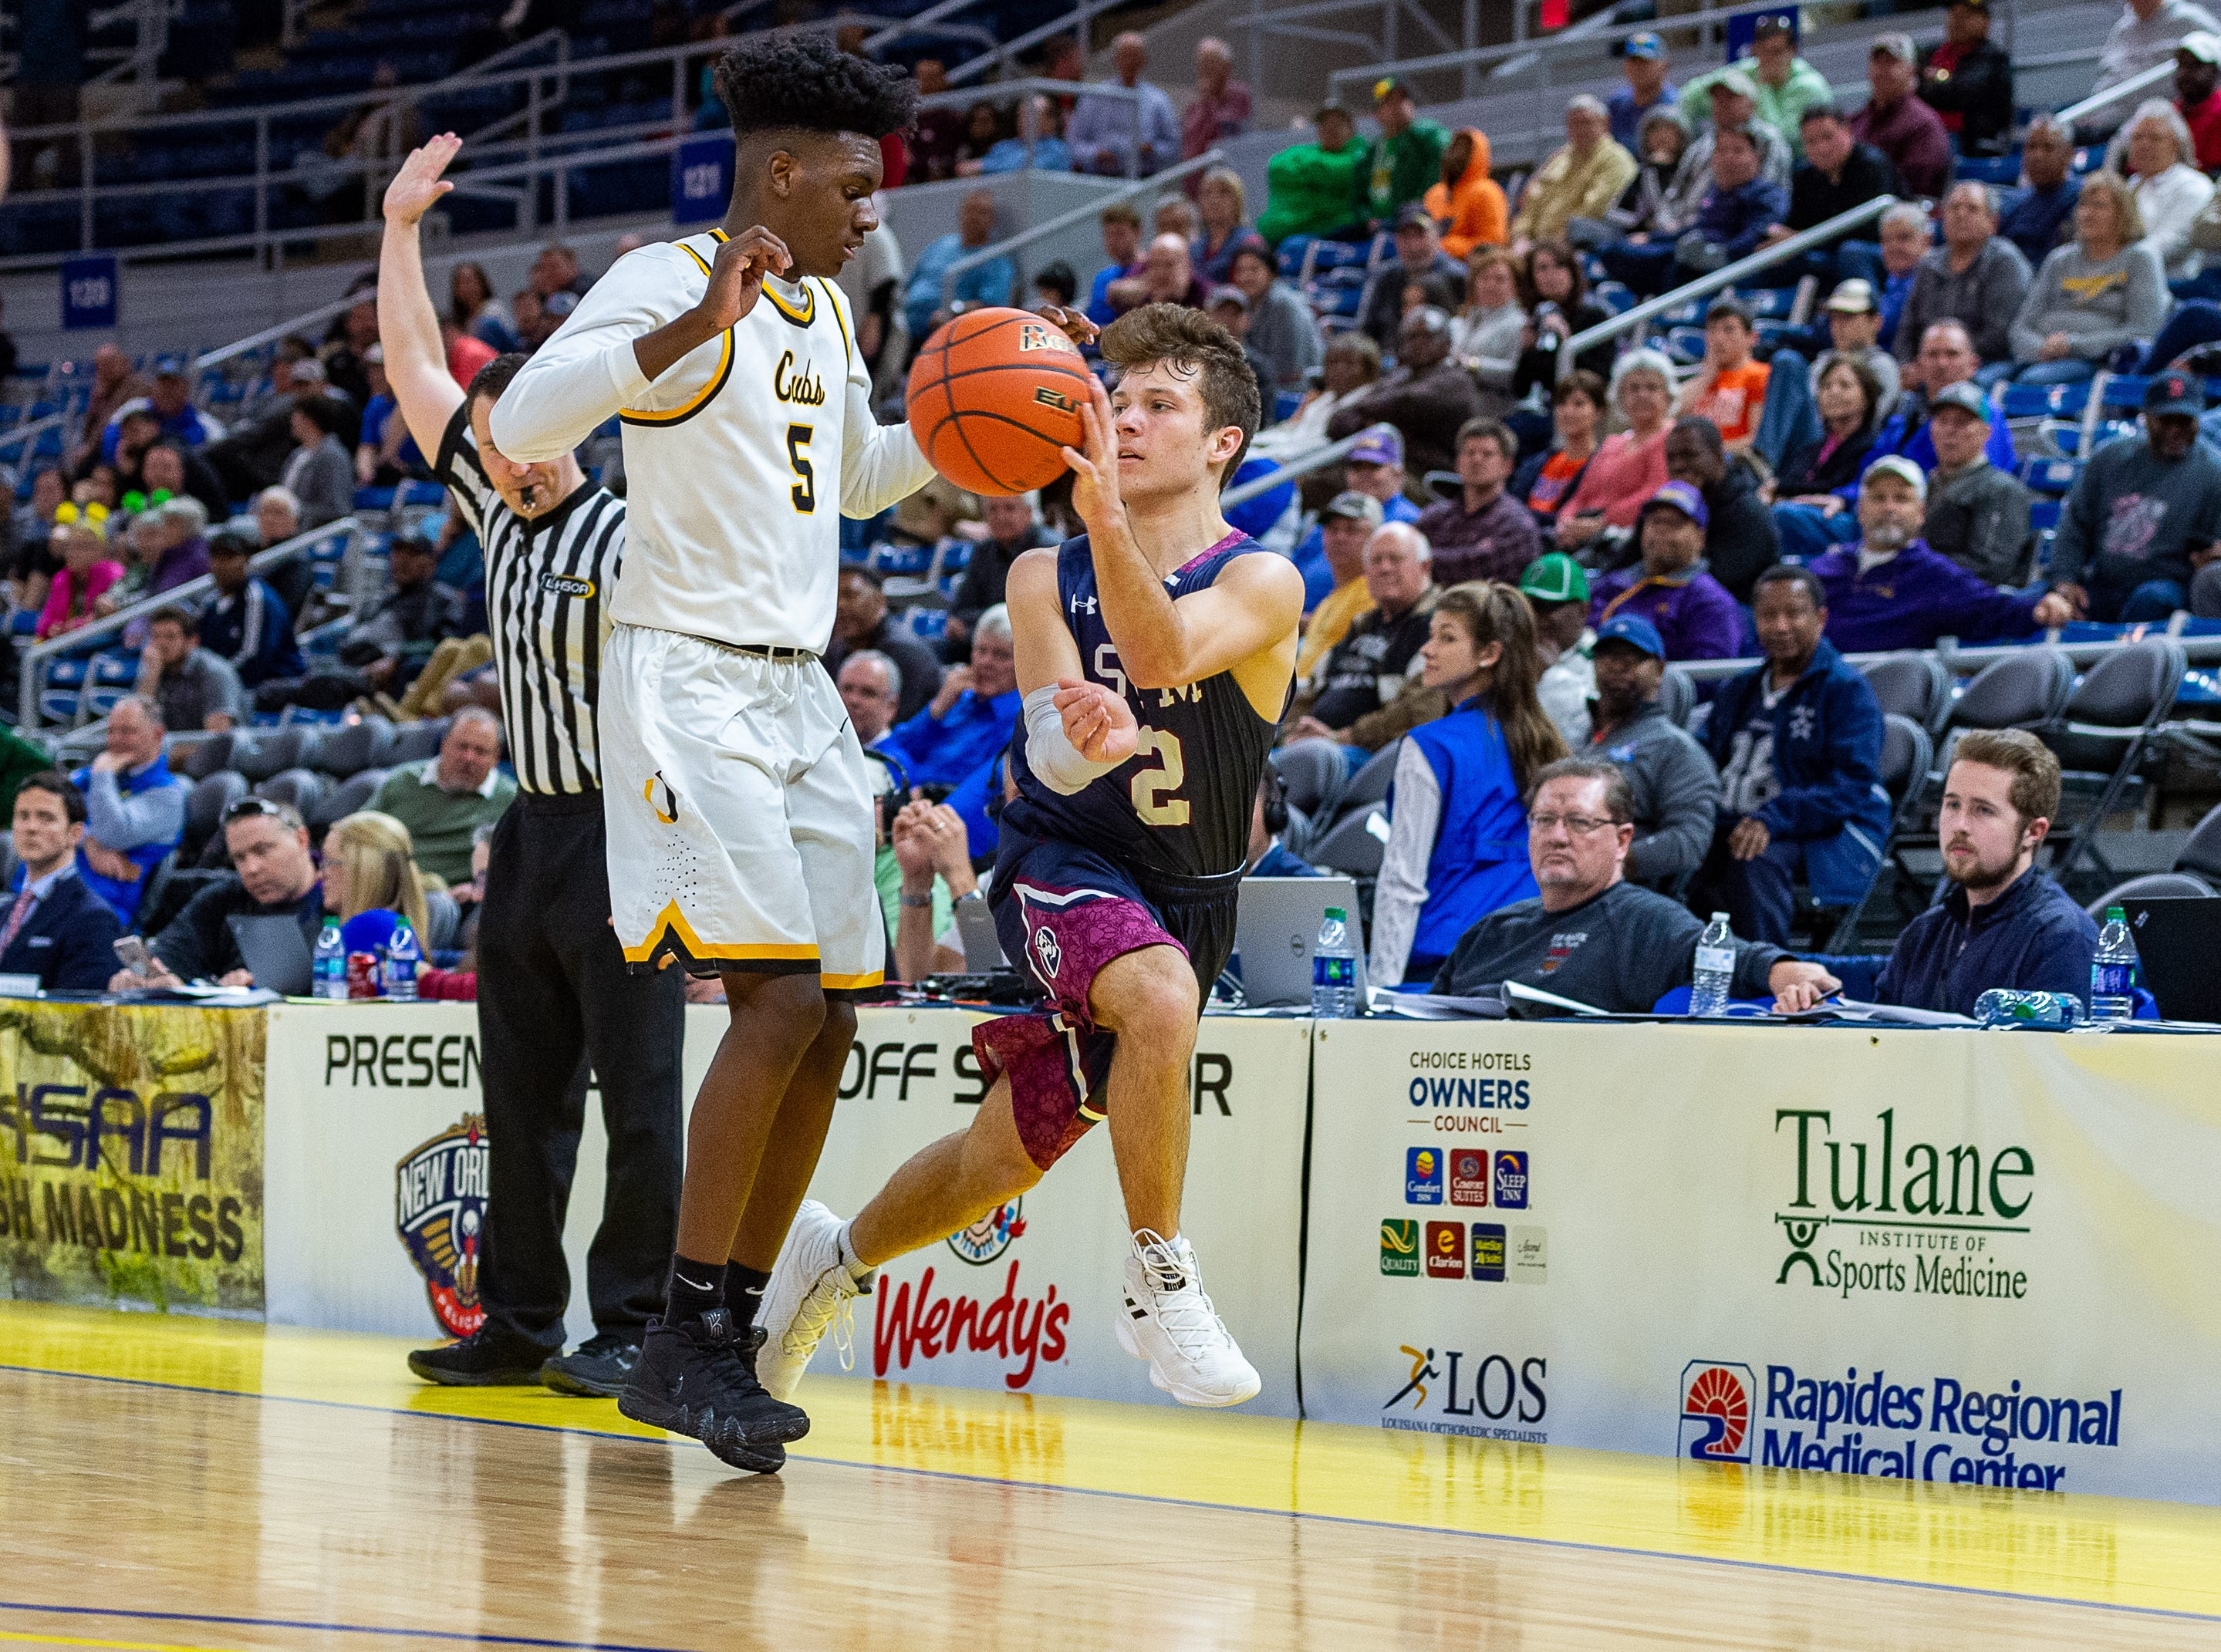 Grant Arceneaux passes the ball as STM takes down University High in the semi final round of the LHSAA Basketball State Championships. Wednesday, March 6, 2019.